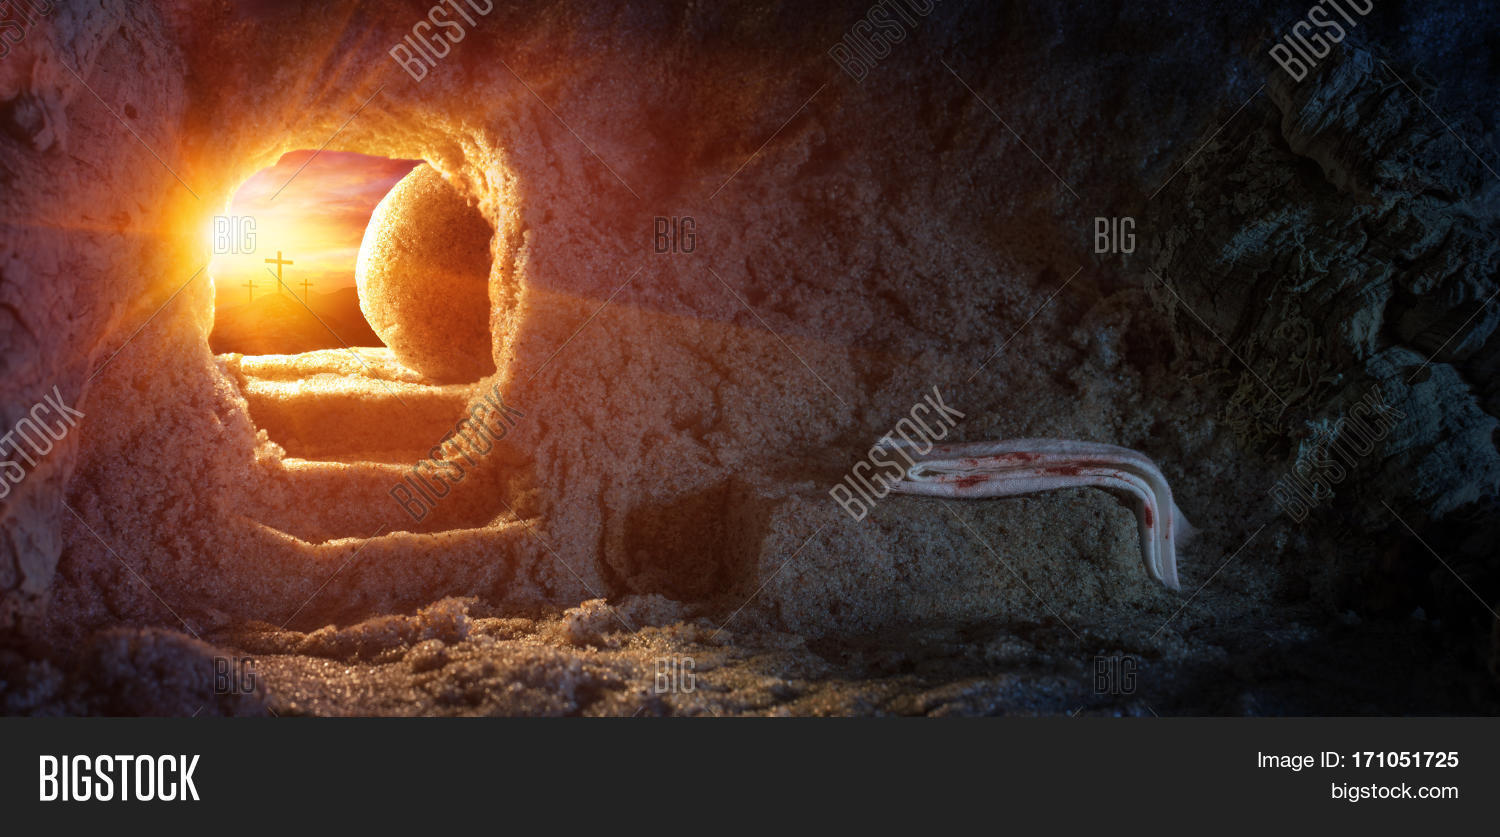 tomb empty shroud crucifixion image u0026 photo bigstock